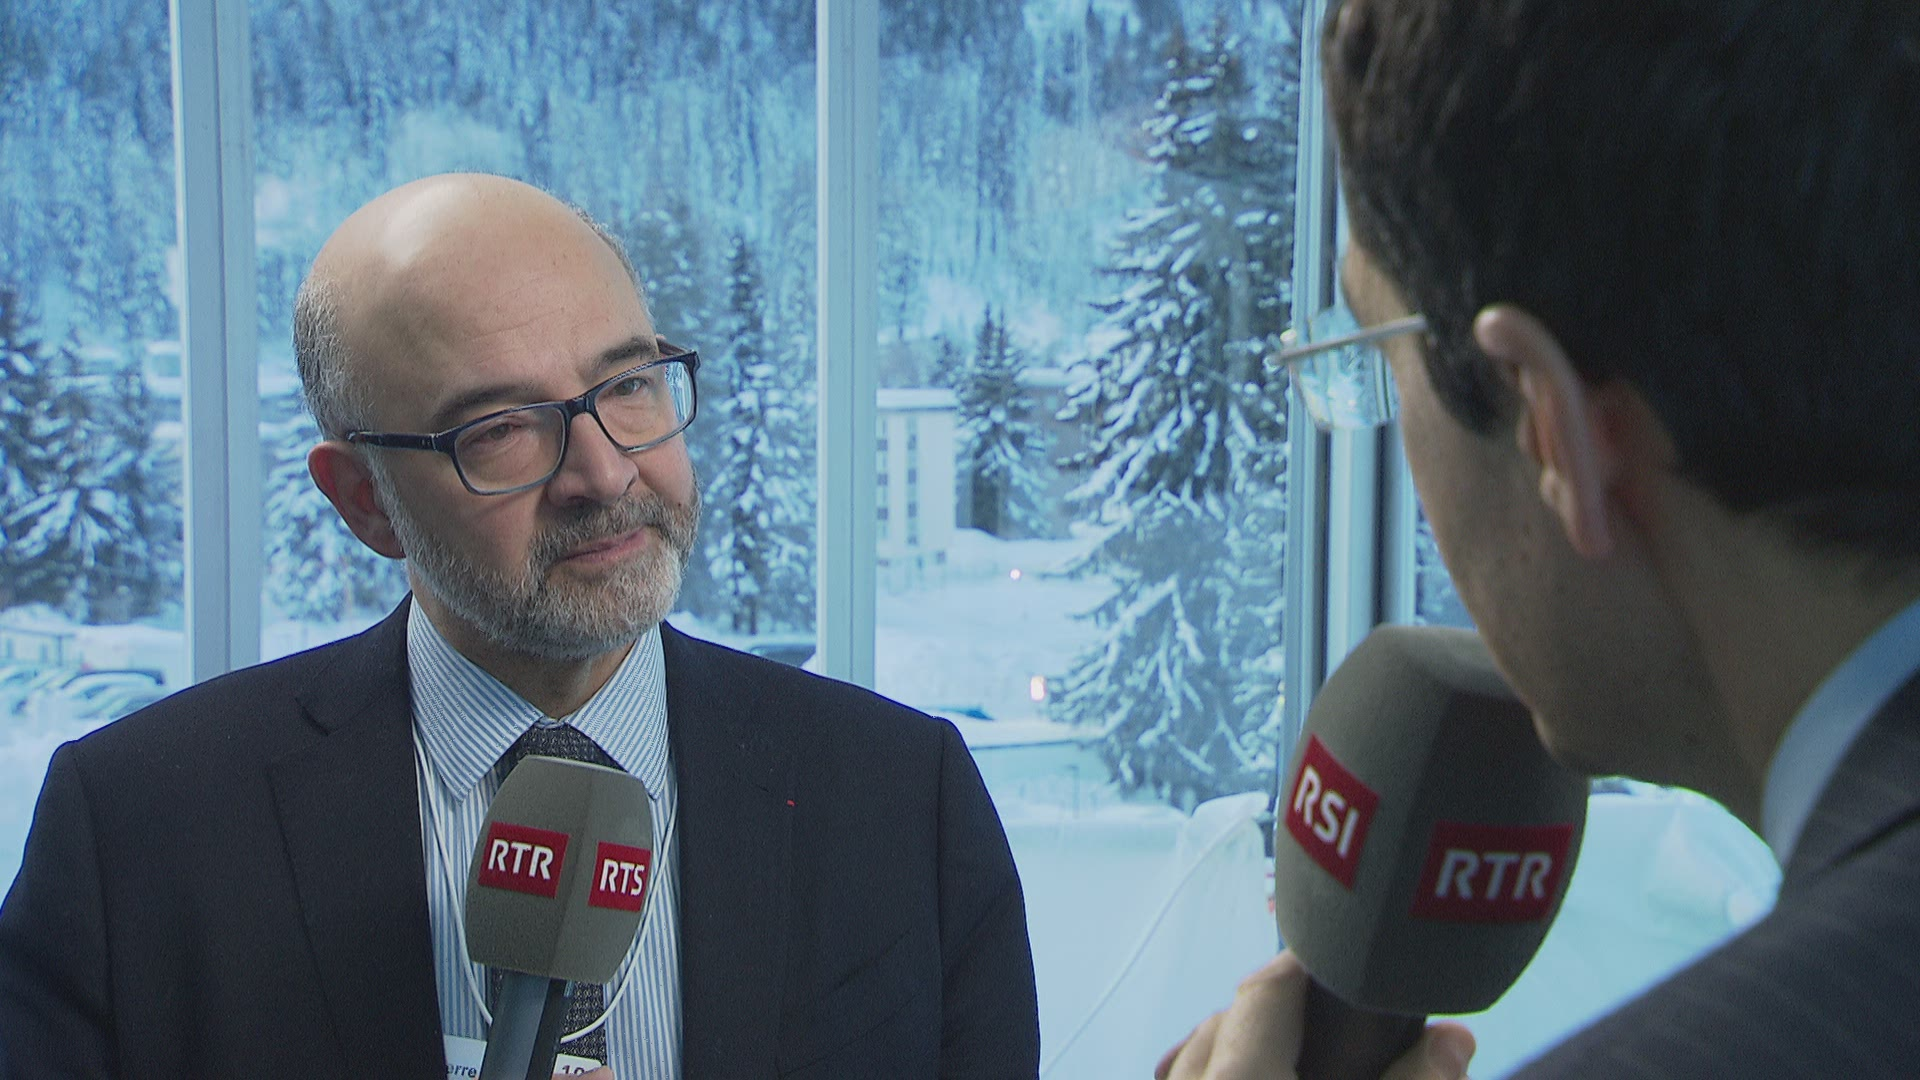 Pierre Moscovici s'exprime sur l'accord institutionnel.